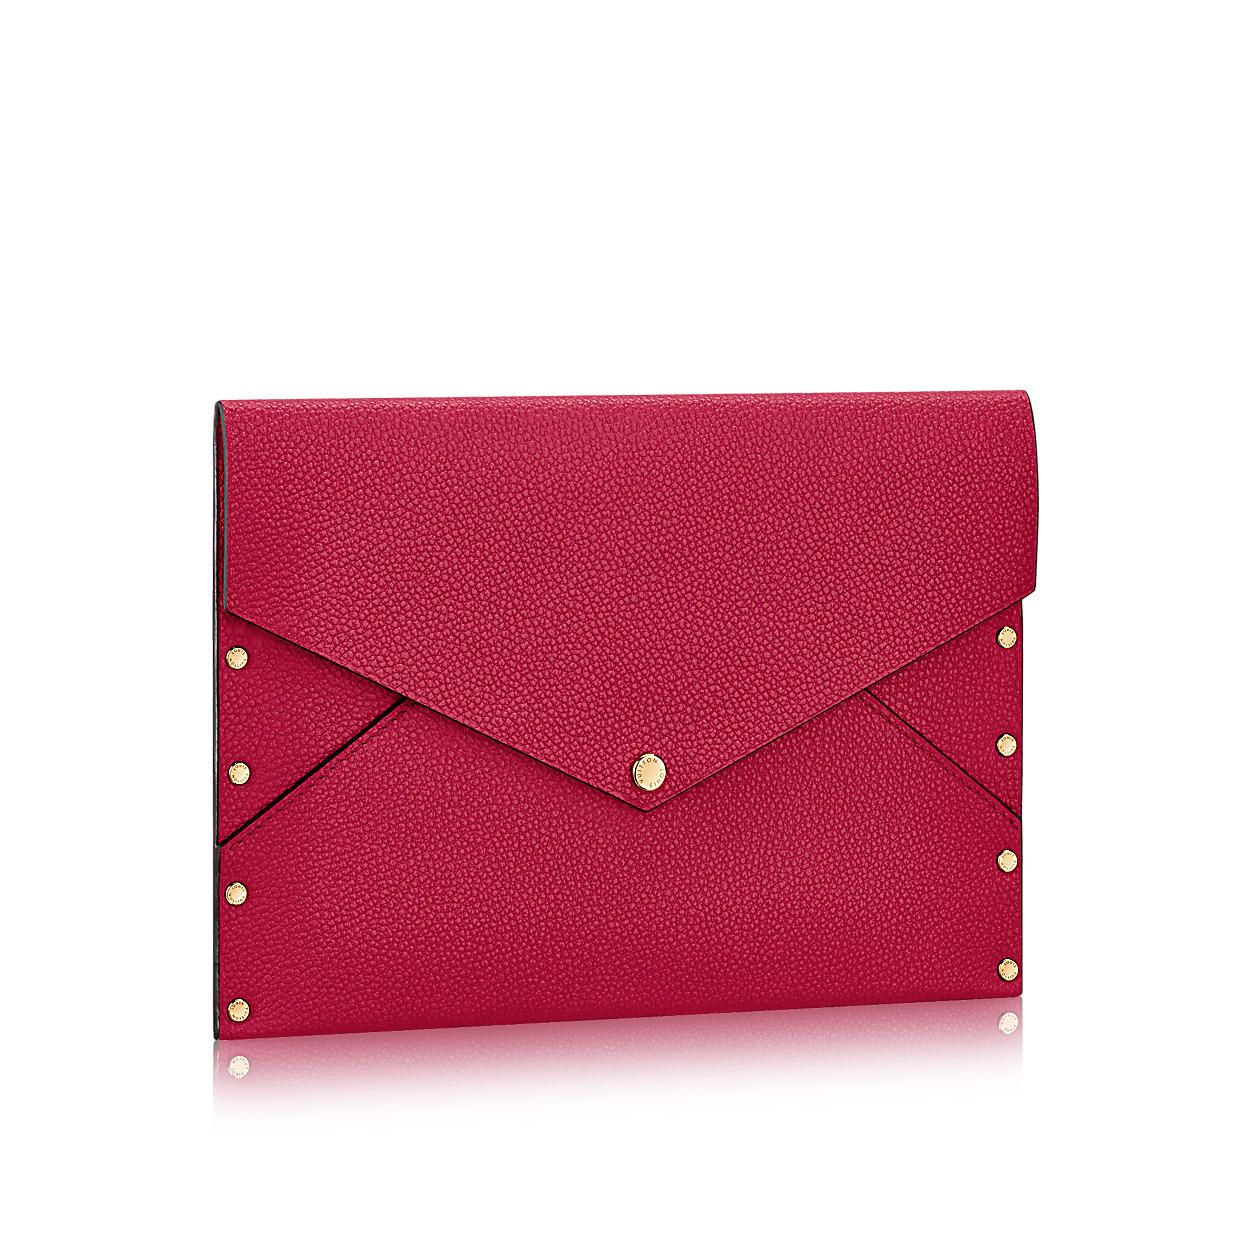 Small Leather Goods - Pouches My Choice QvZVqP